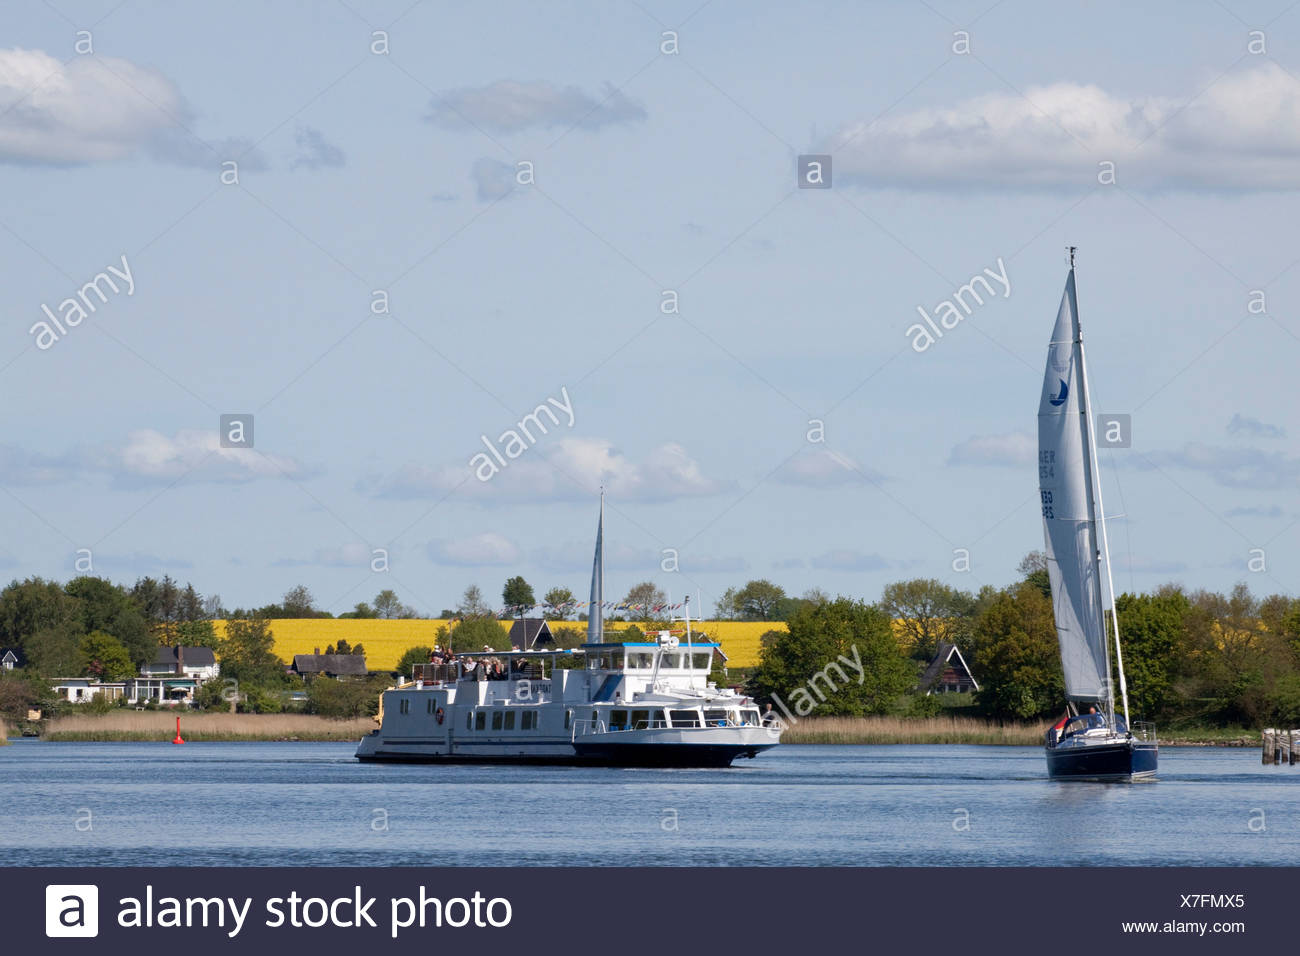 Passenger vessel on the Schlei estuary, Schleswig-Holstein, northern Germany, Germany, Europe - Stock Image